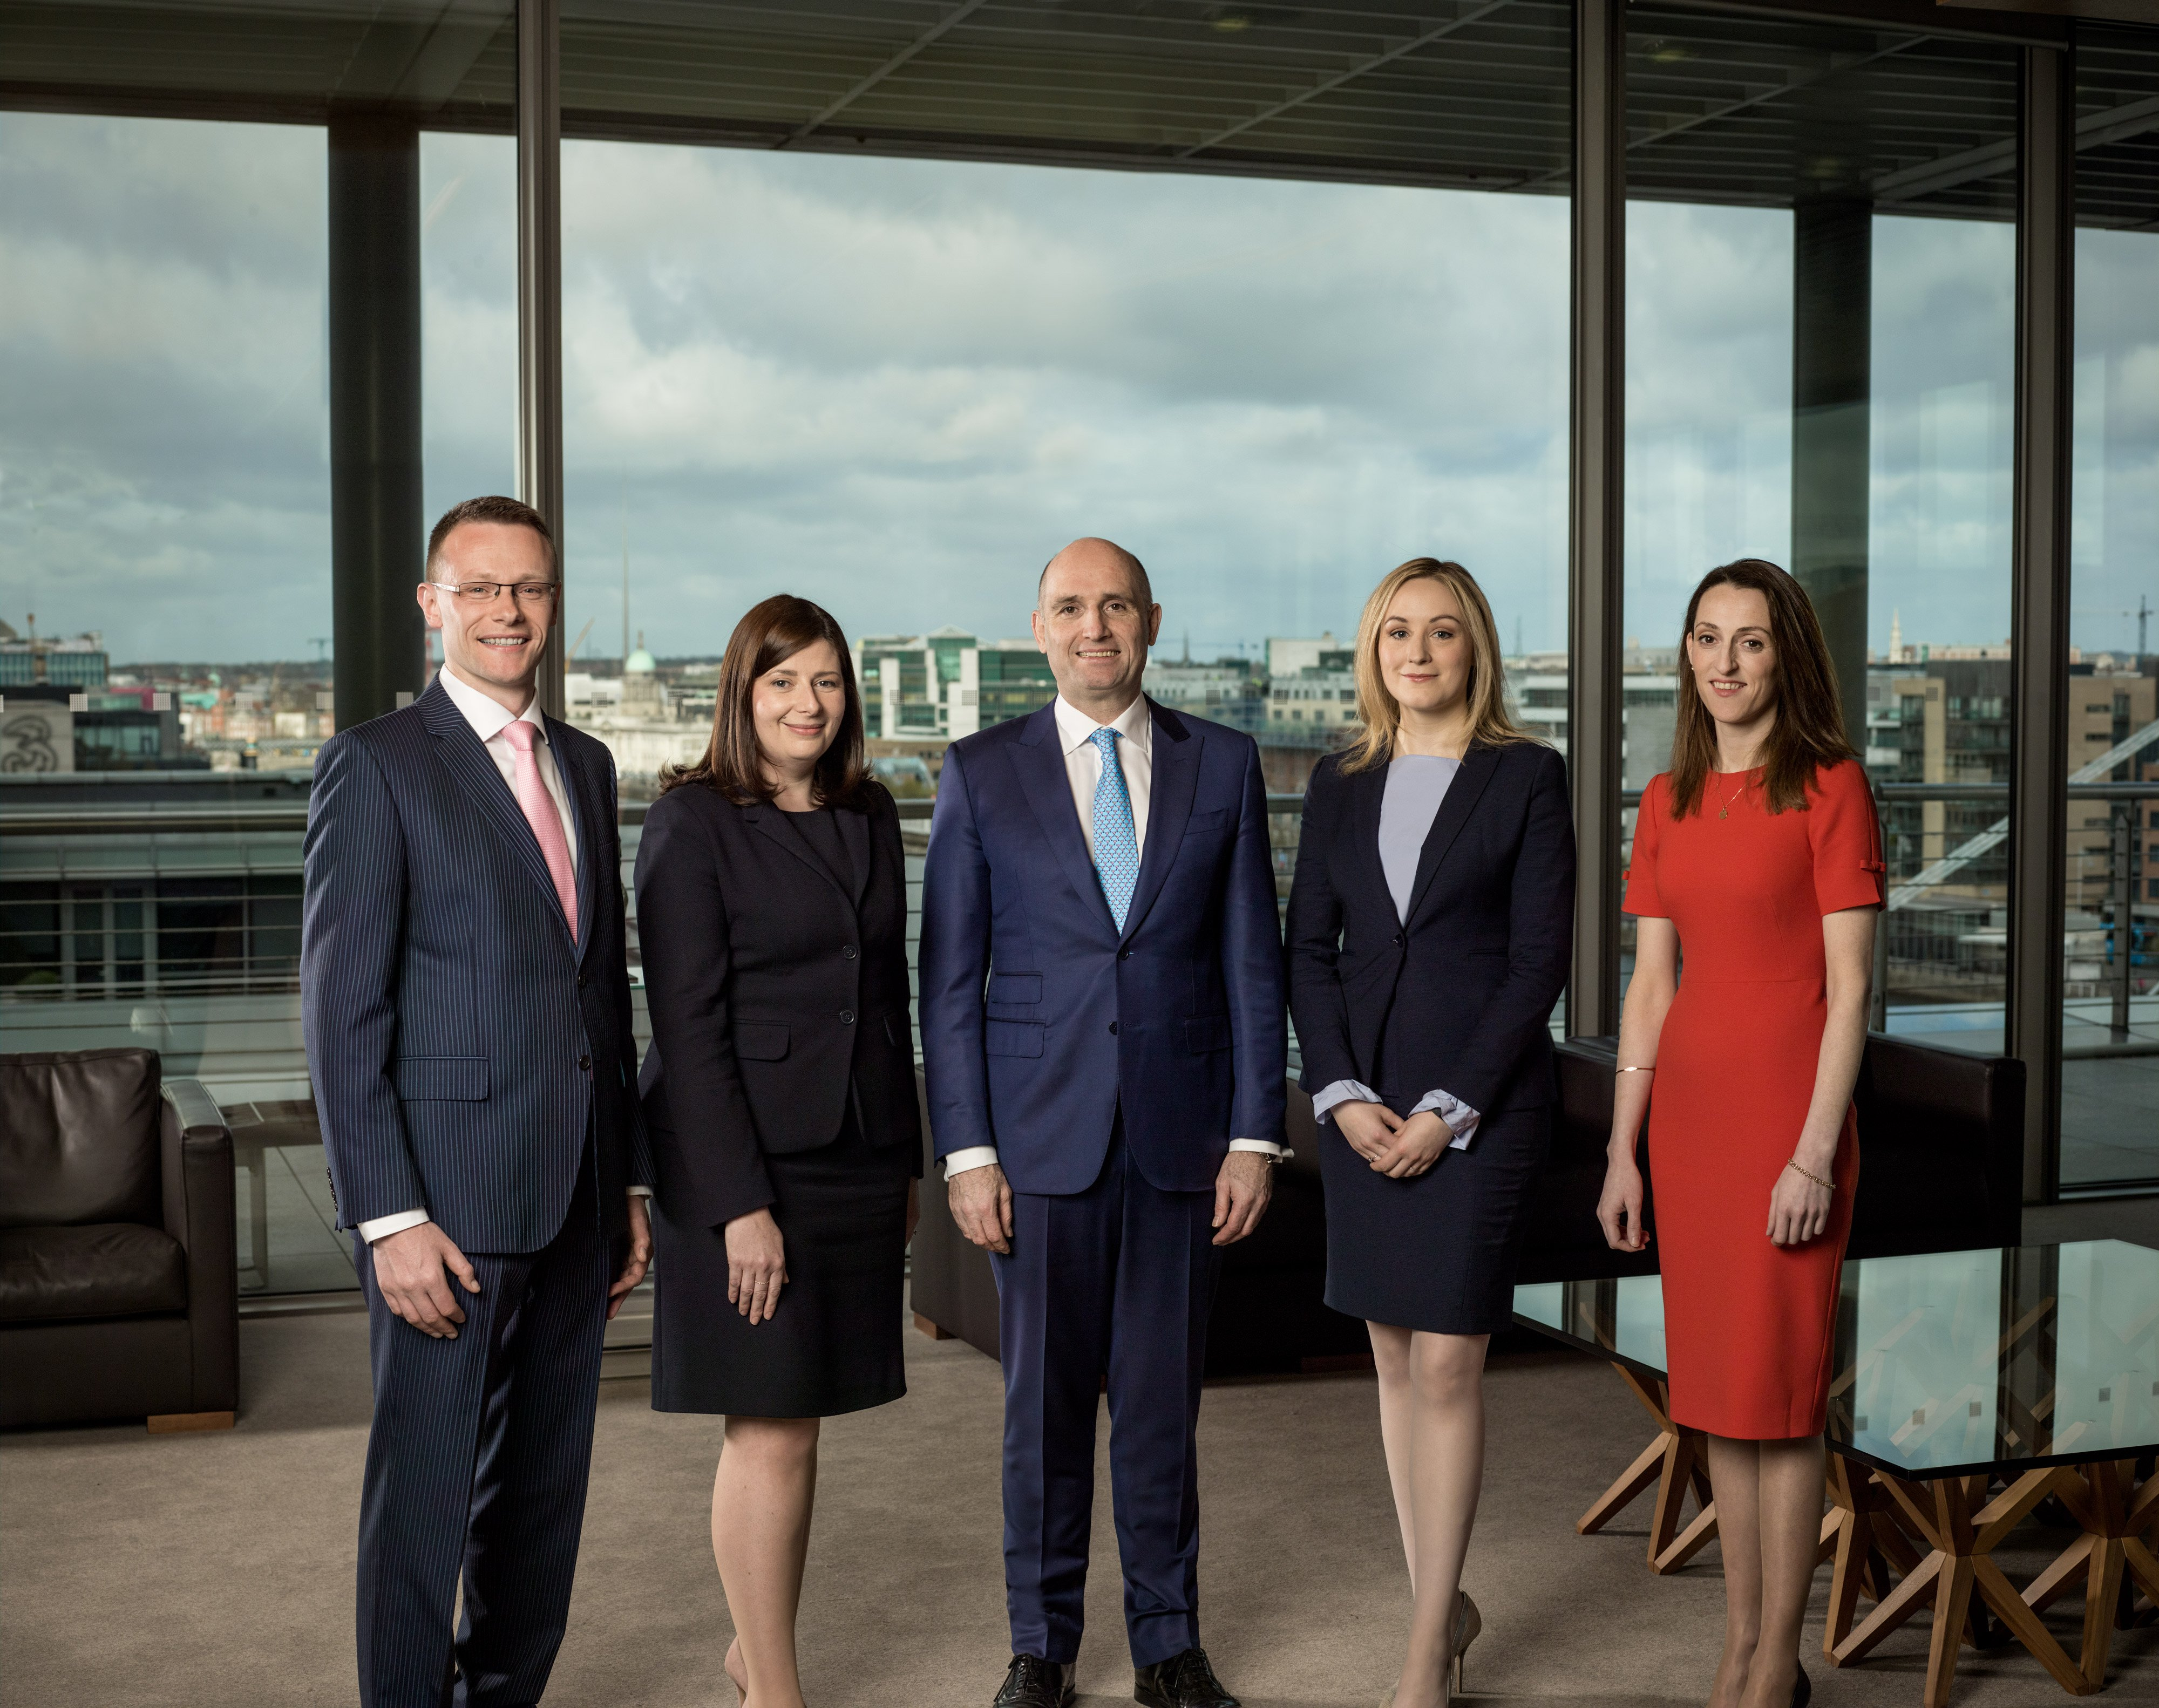 McCann FitzGerald appoints three new partners